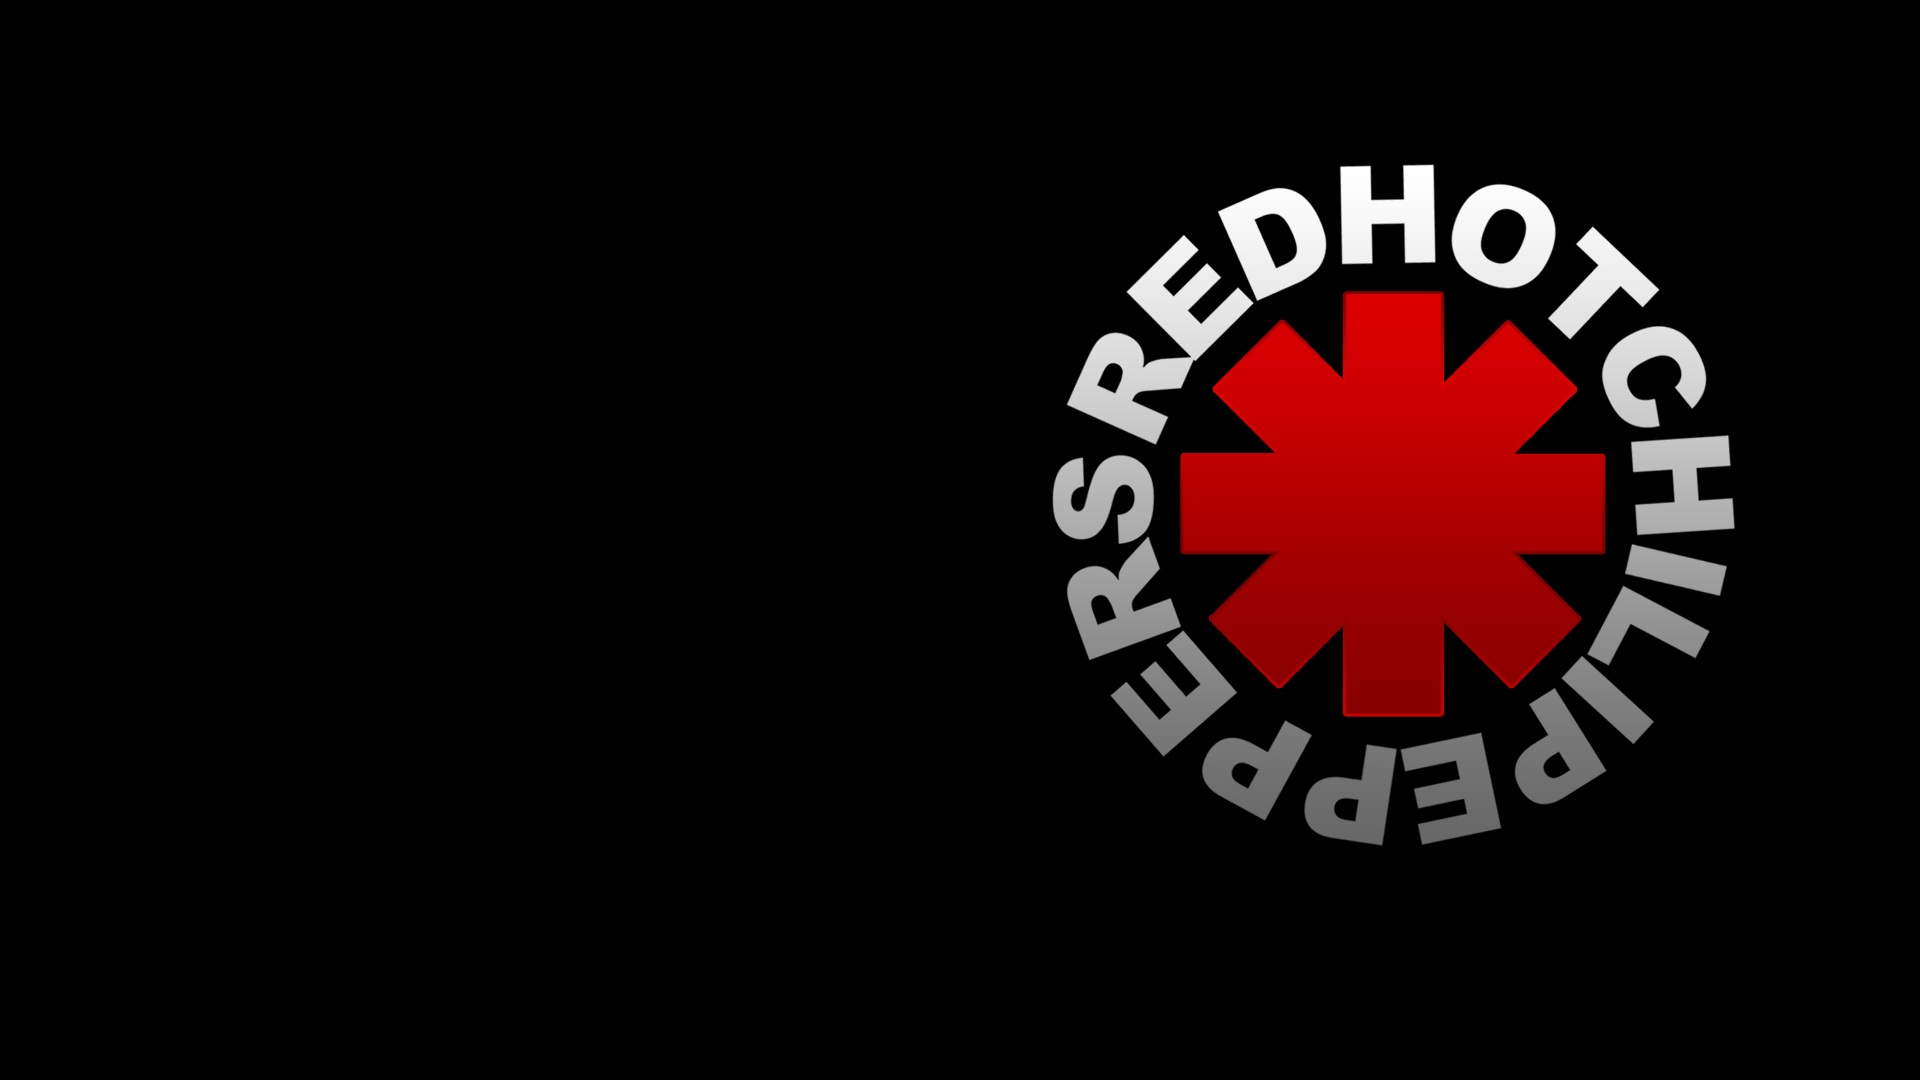 24 Red Hot Chili Peppers HD Wallpapers | Backgrounds - Wallpaper Abyss